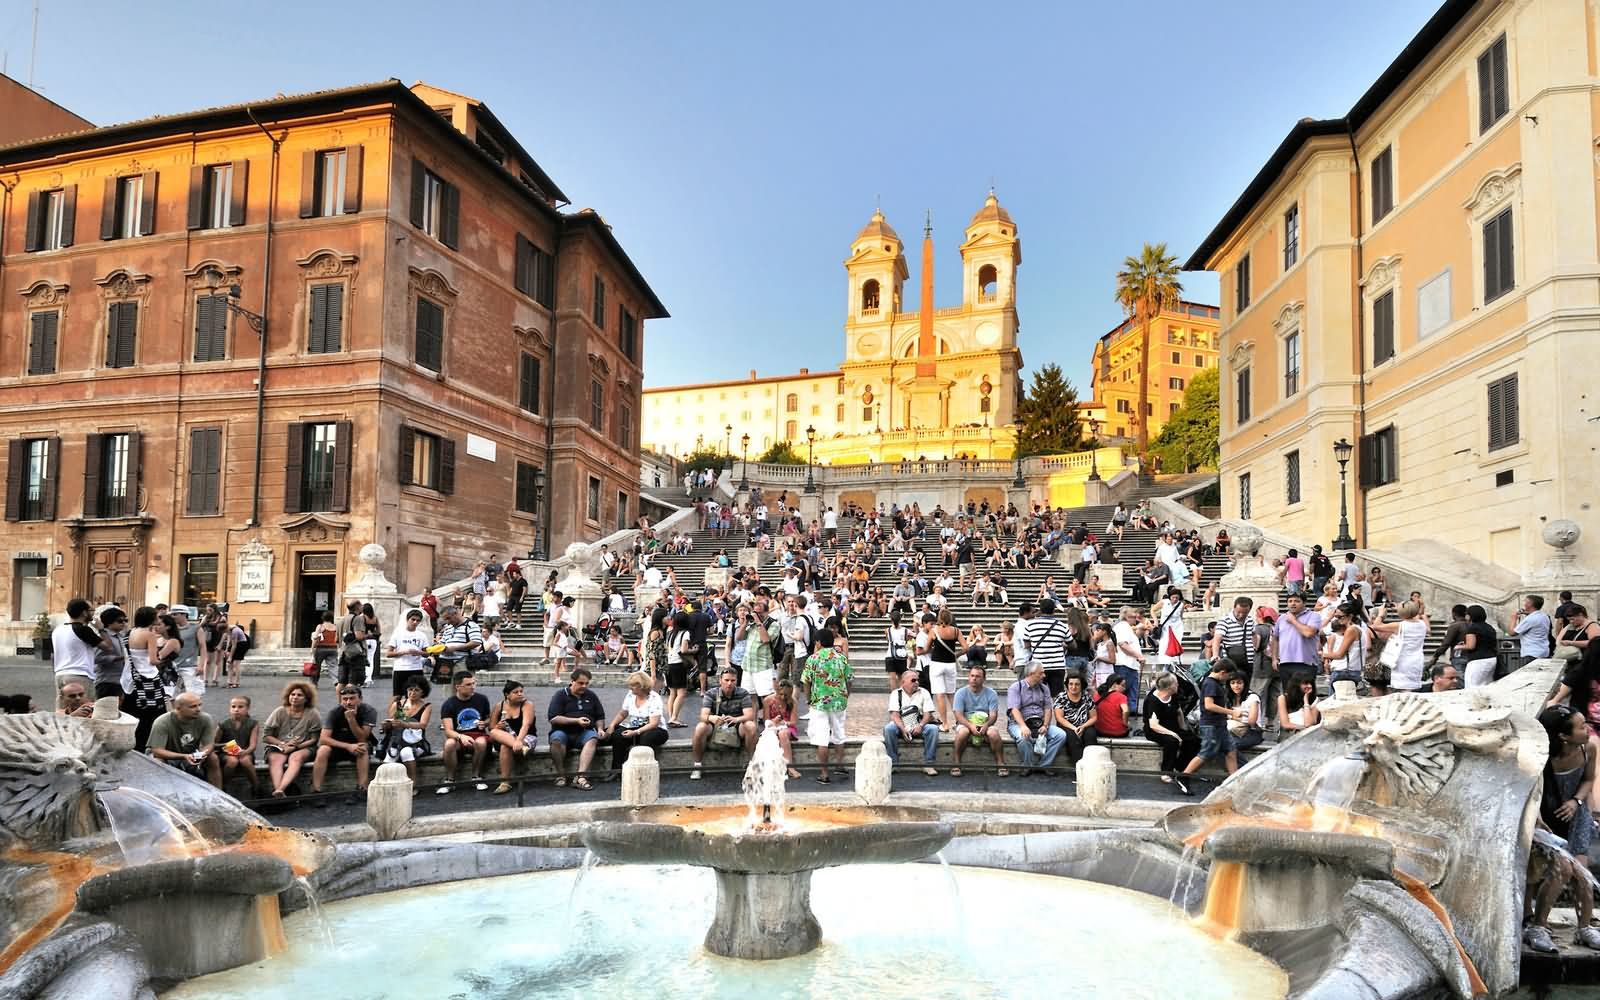 People Sitting on The Spanish Steps